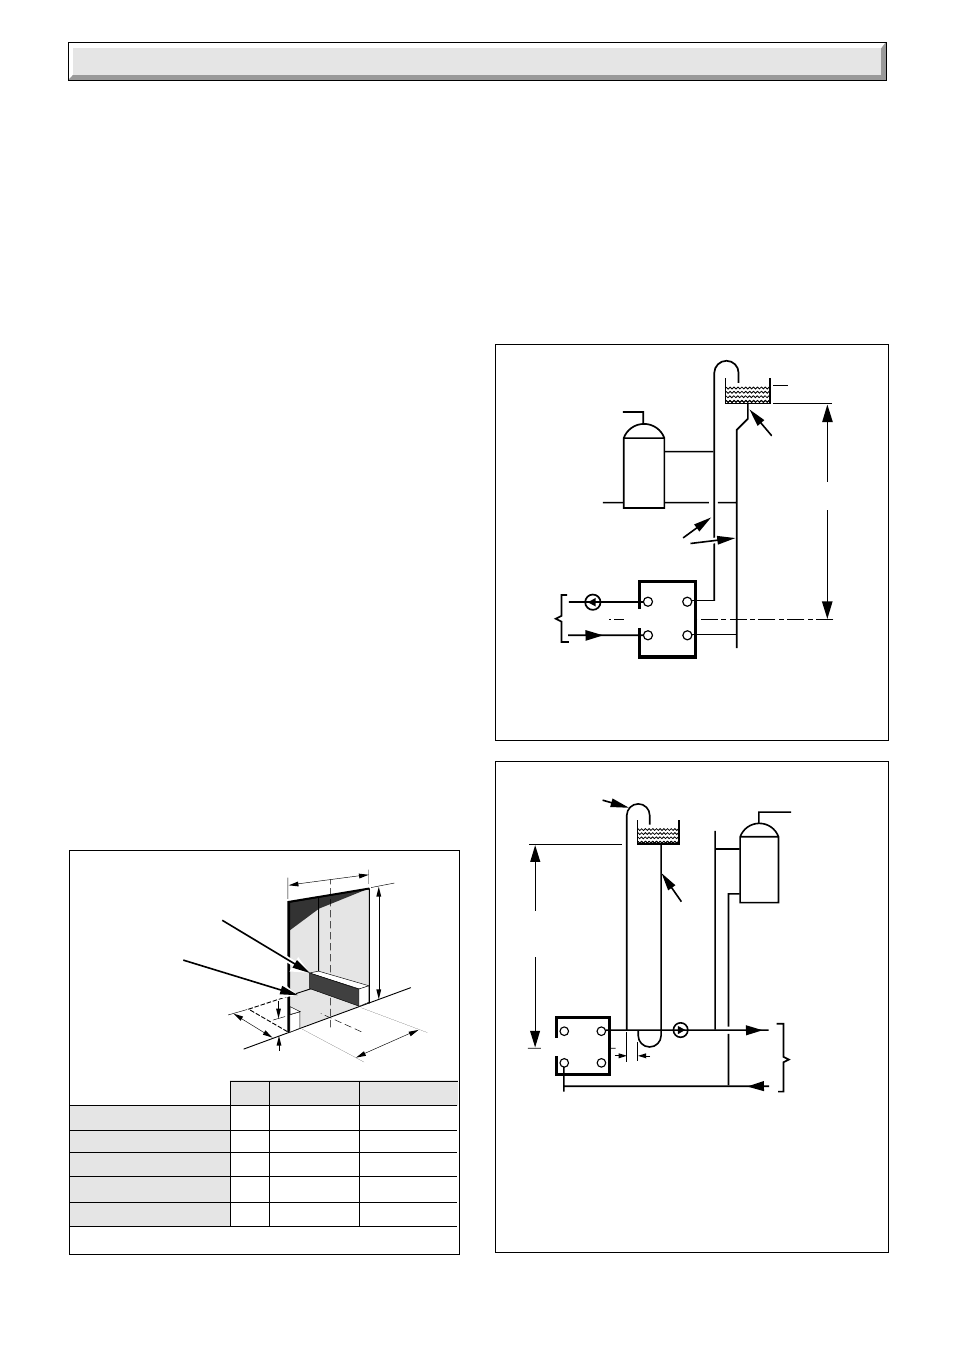 1 general | Glow-worm 56-2 Back Boiler User Manual | Page 4 / 24